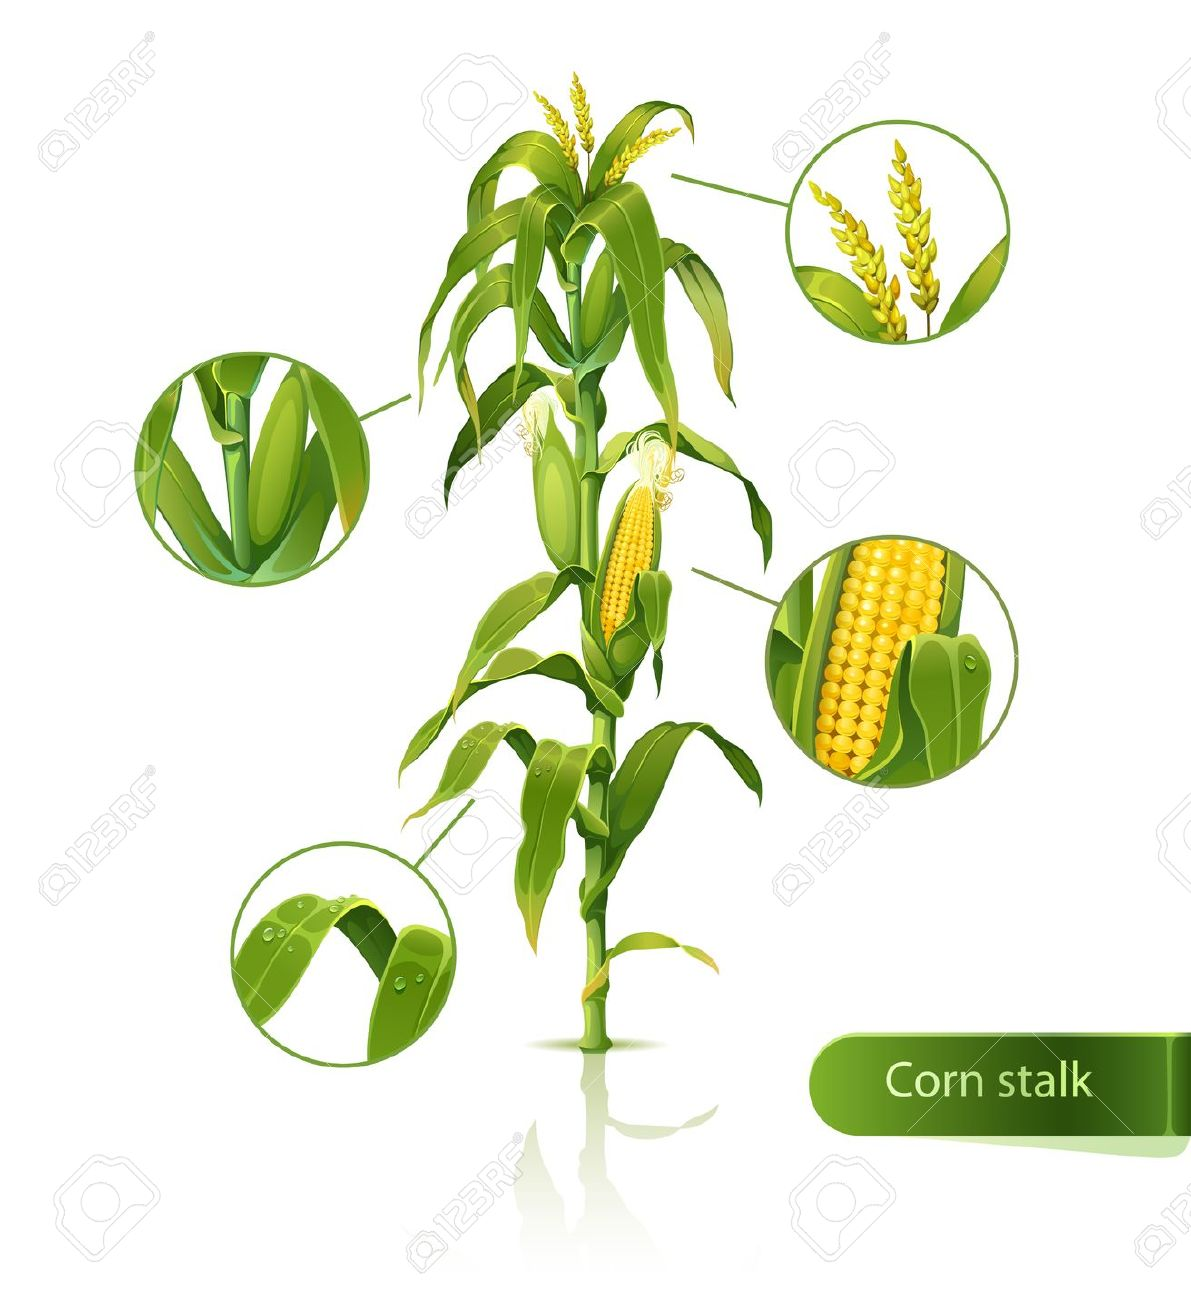 Encyclopedic Illustration Of Corn Stalk. Royalty Free Cliparts.